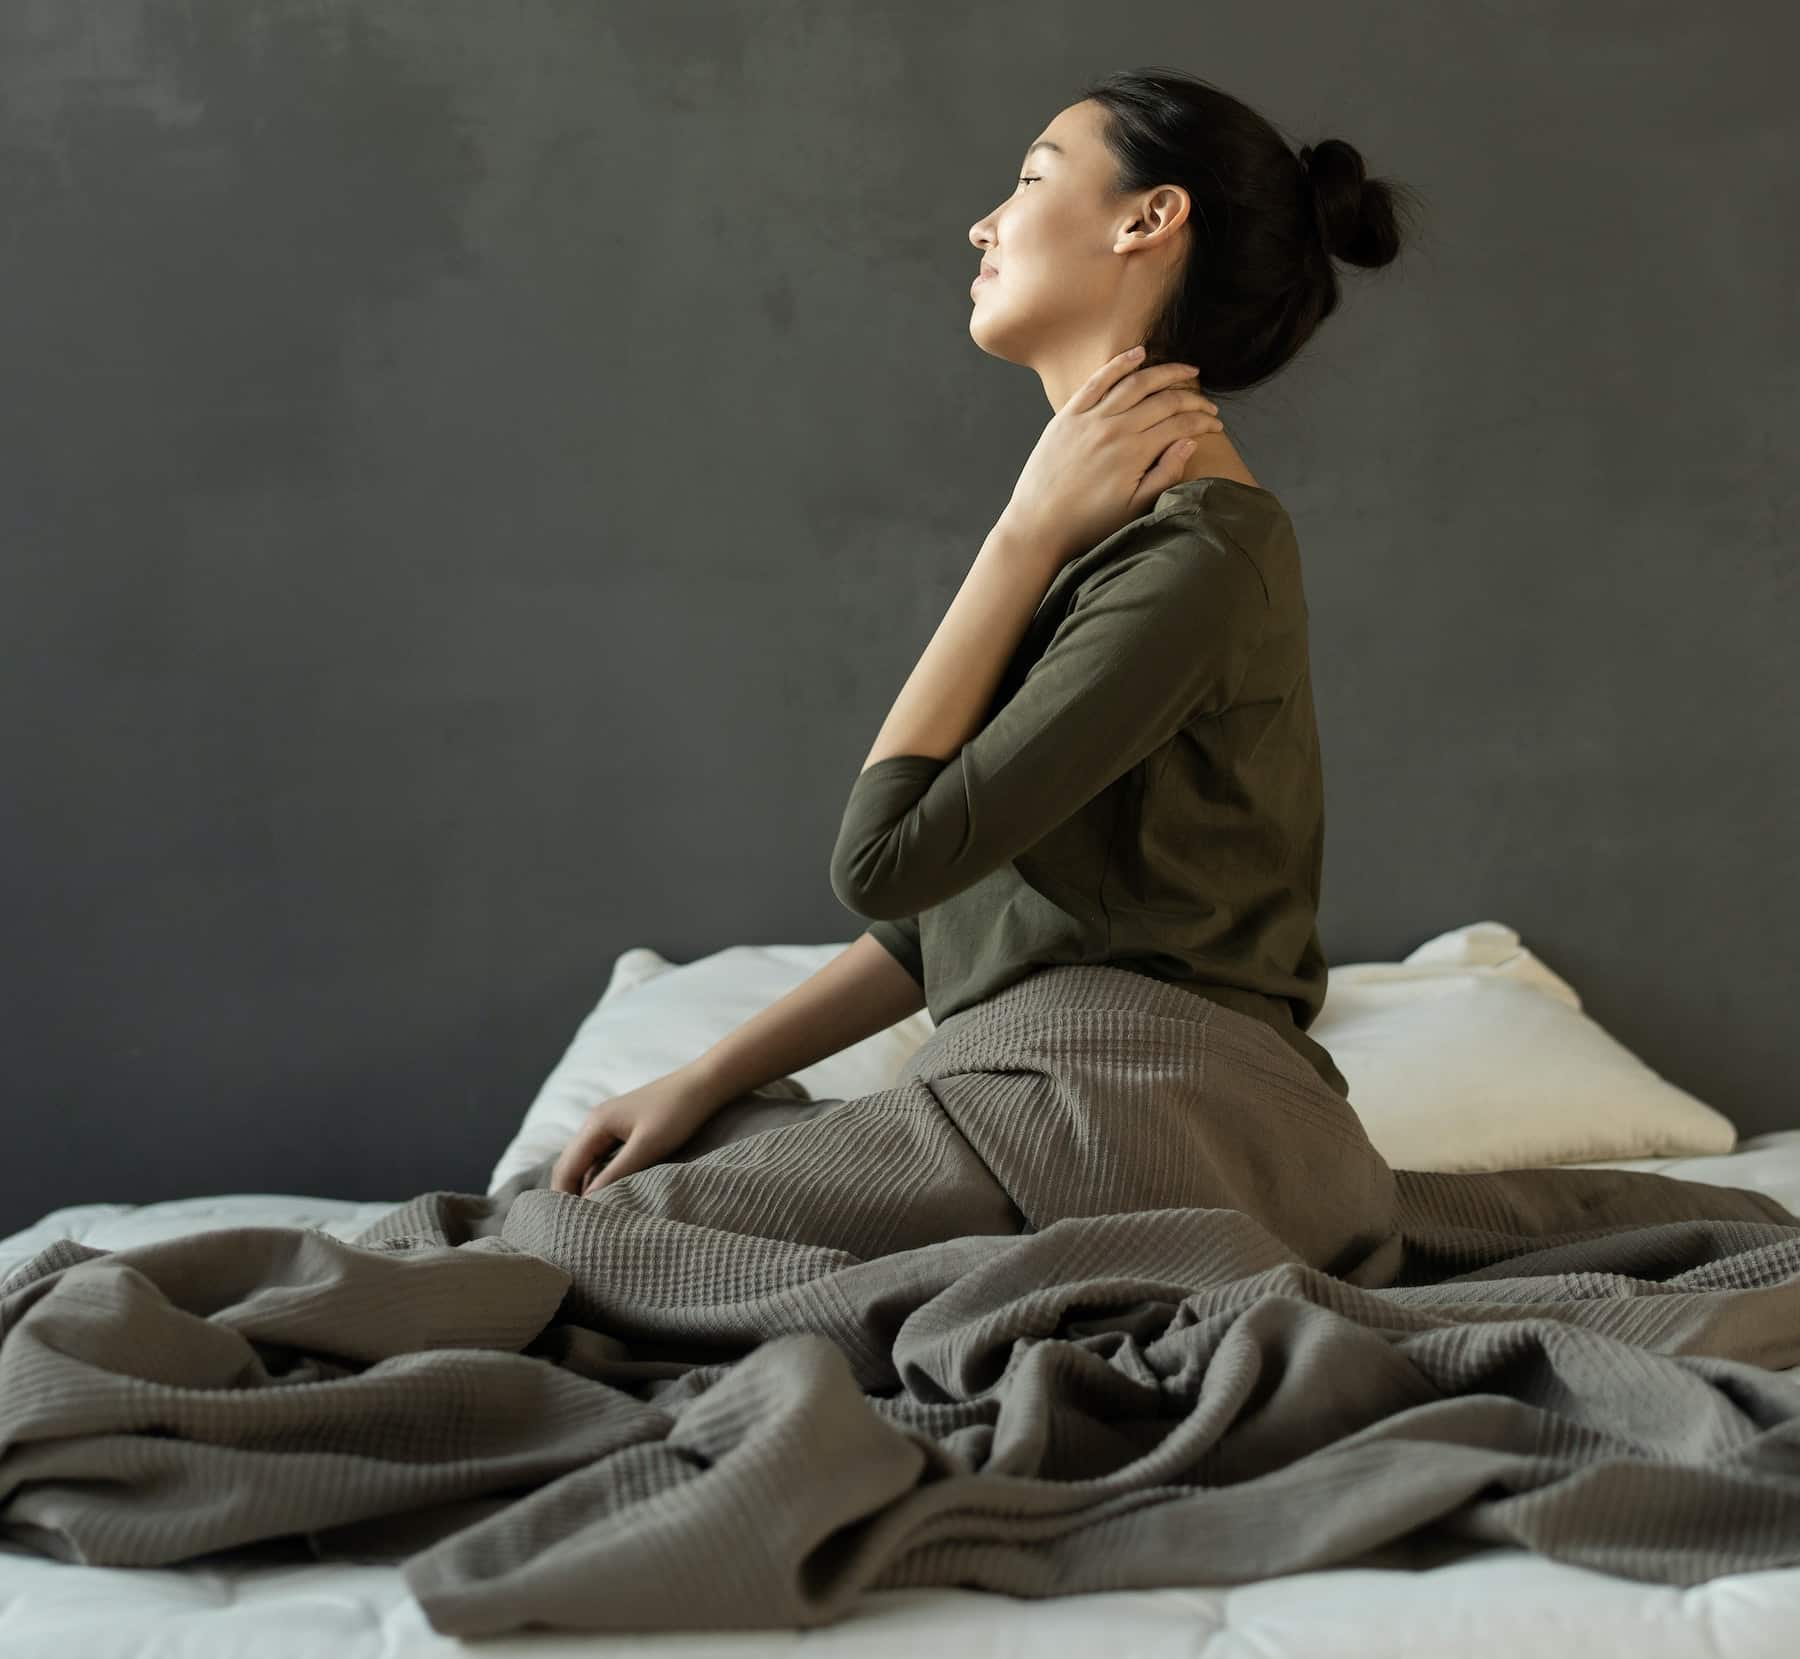 woman-in-gray-dress-sitting-on-bed-3754299